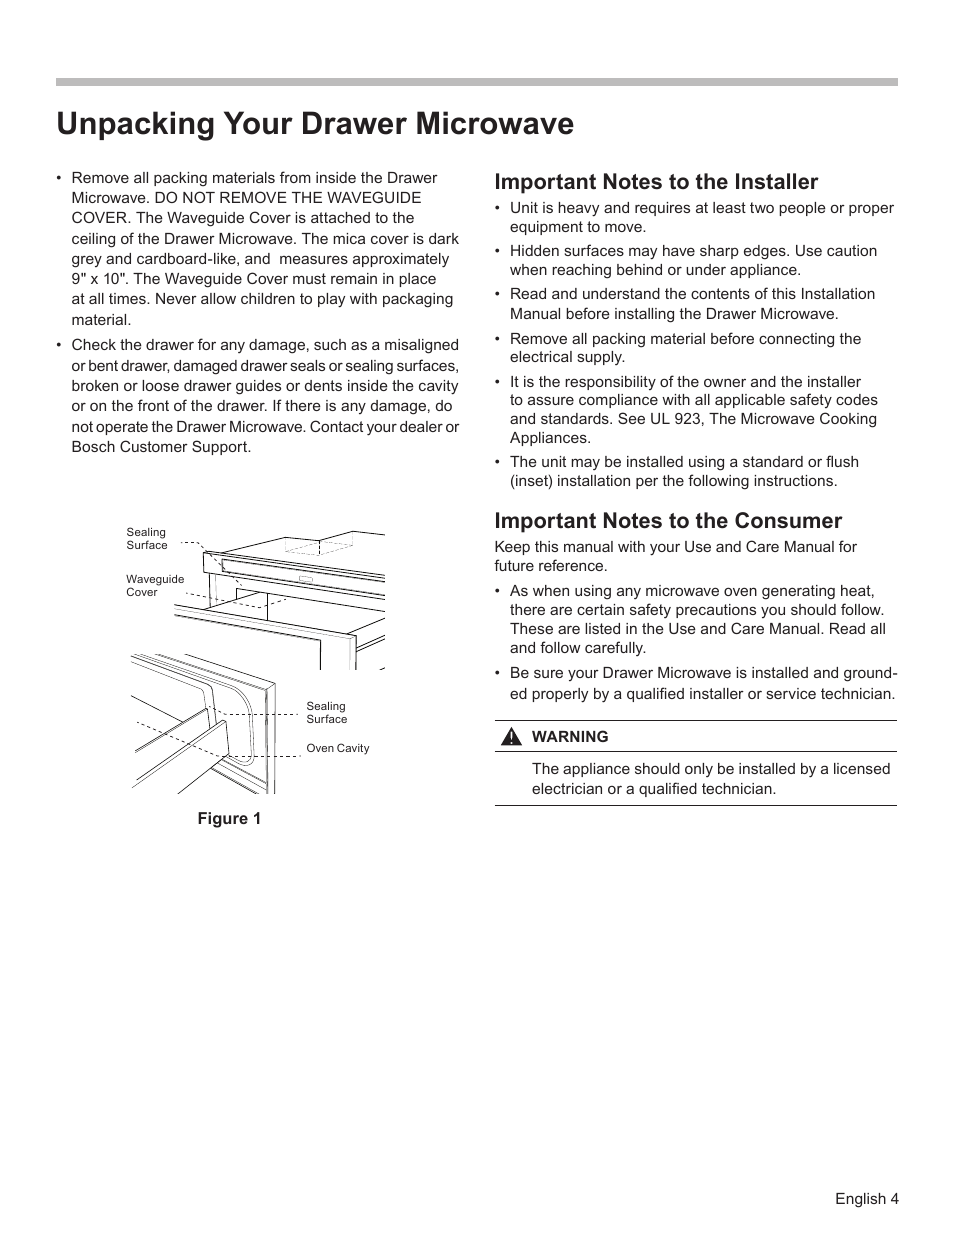 Unpacking Your Drawer Microwave Bosch Hmd8451uc User Manual Page 4 24